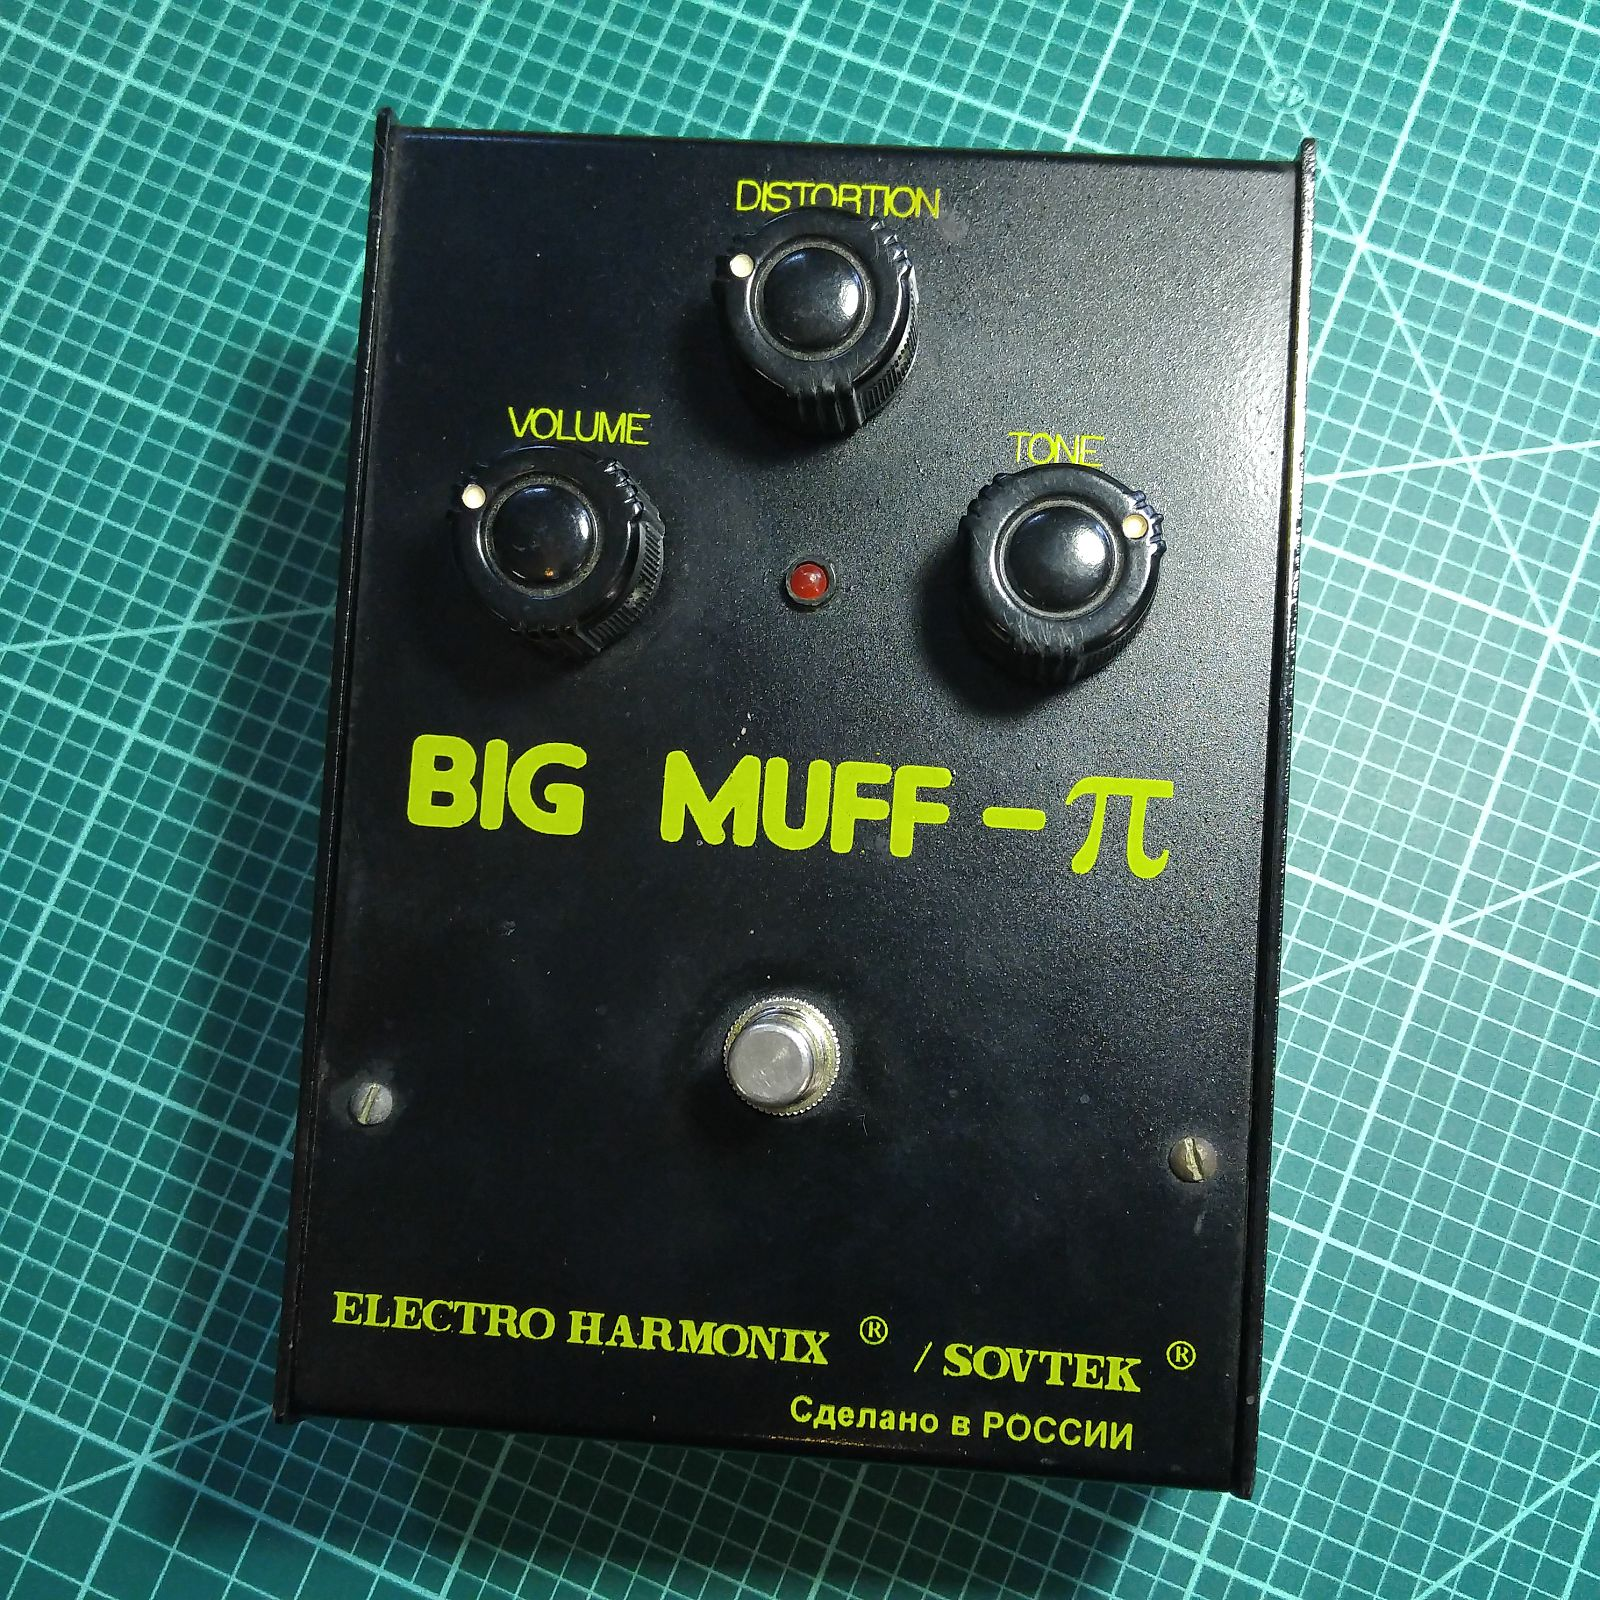 Electro-Harmonix Big Muff Pi Black Russian Bubble Font 7D 1998-2000